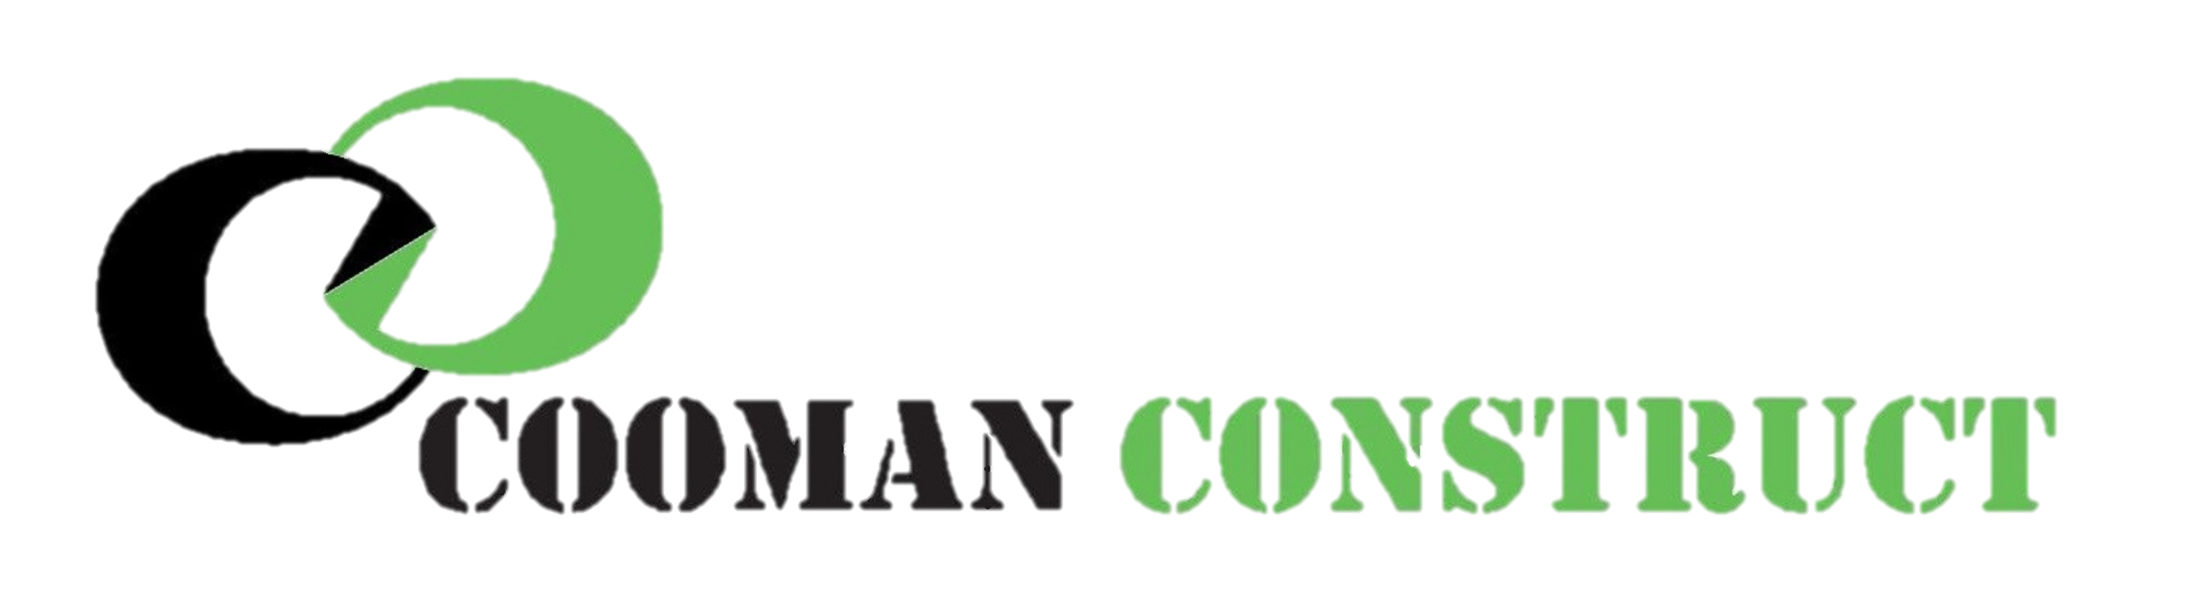 coomanconstruction logo